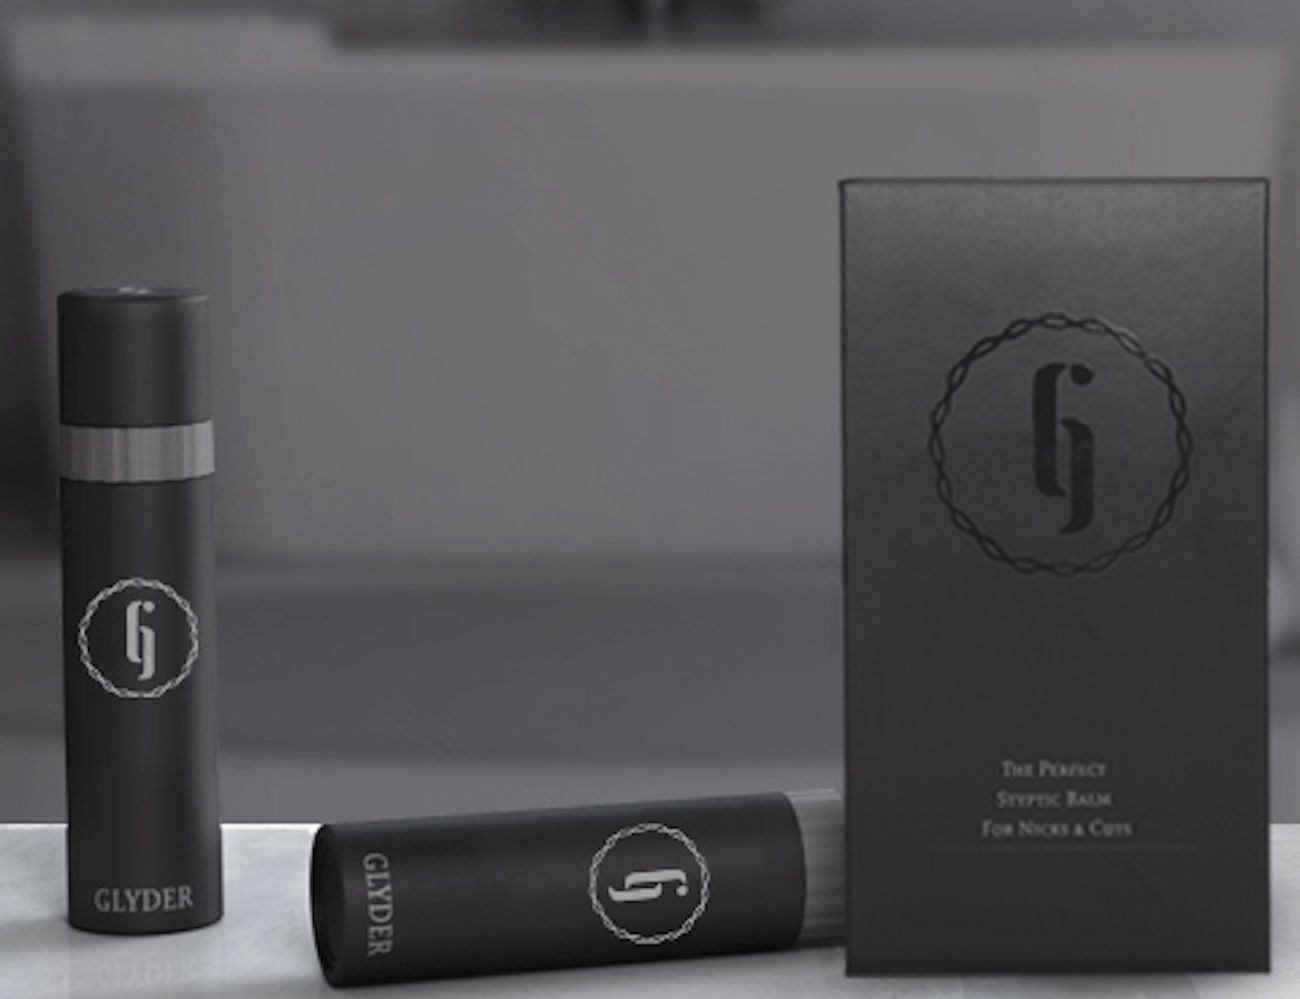 Glyder – The Perfect Styptic Balm for Nicks & Cuts